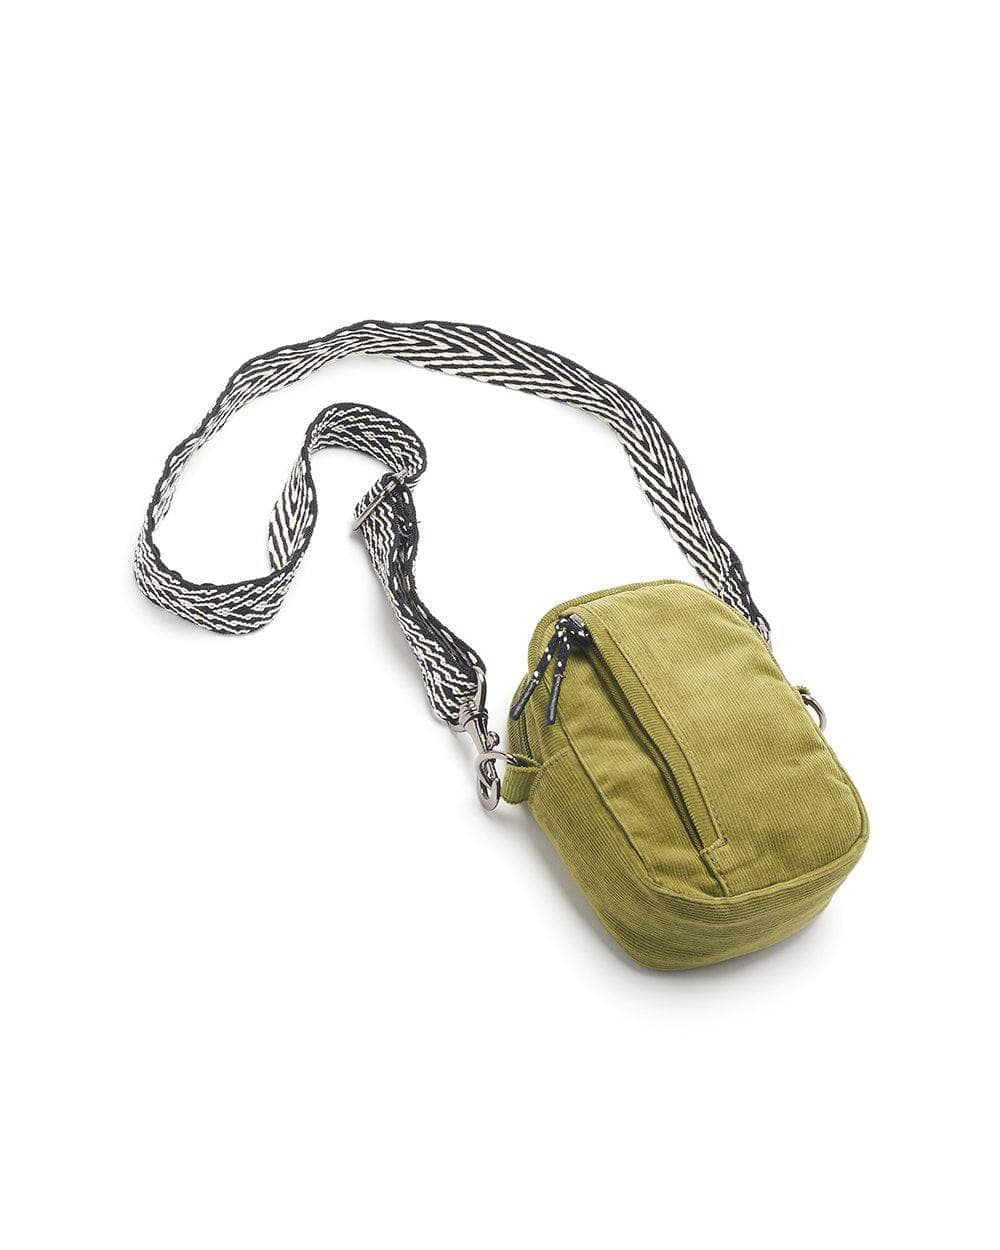 Lucy & Yak Bag Brady Mini Cross Body Bag in Olive